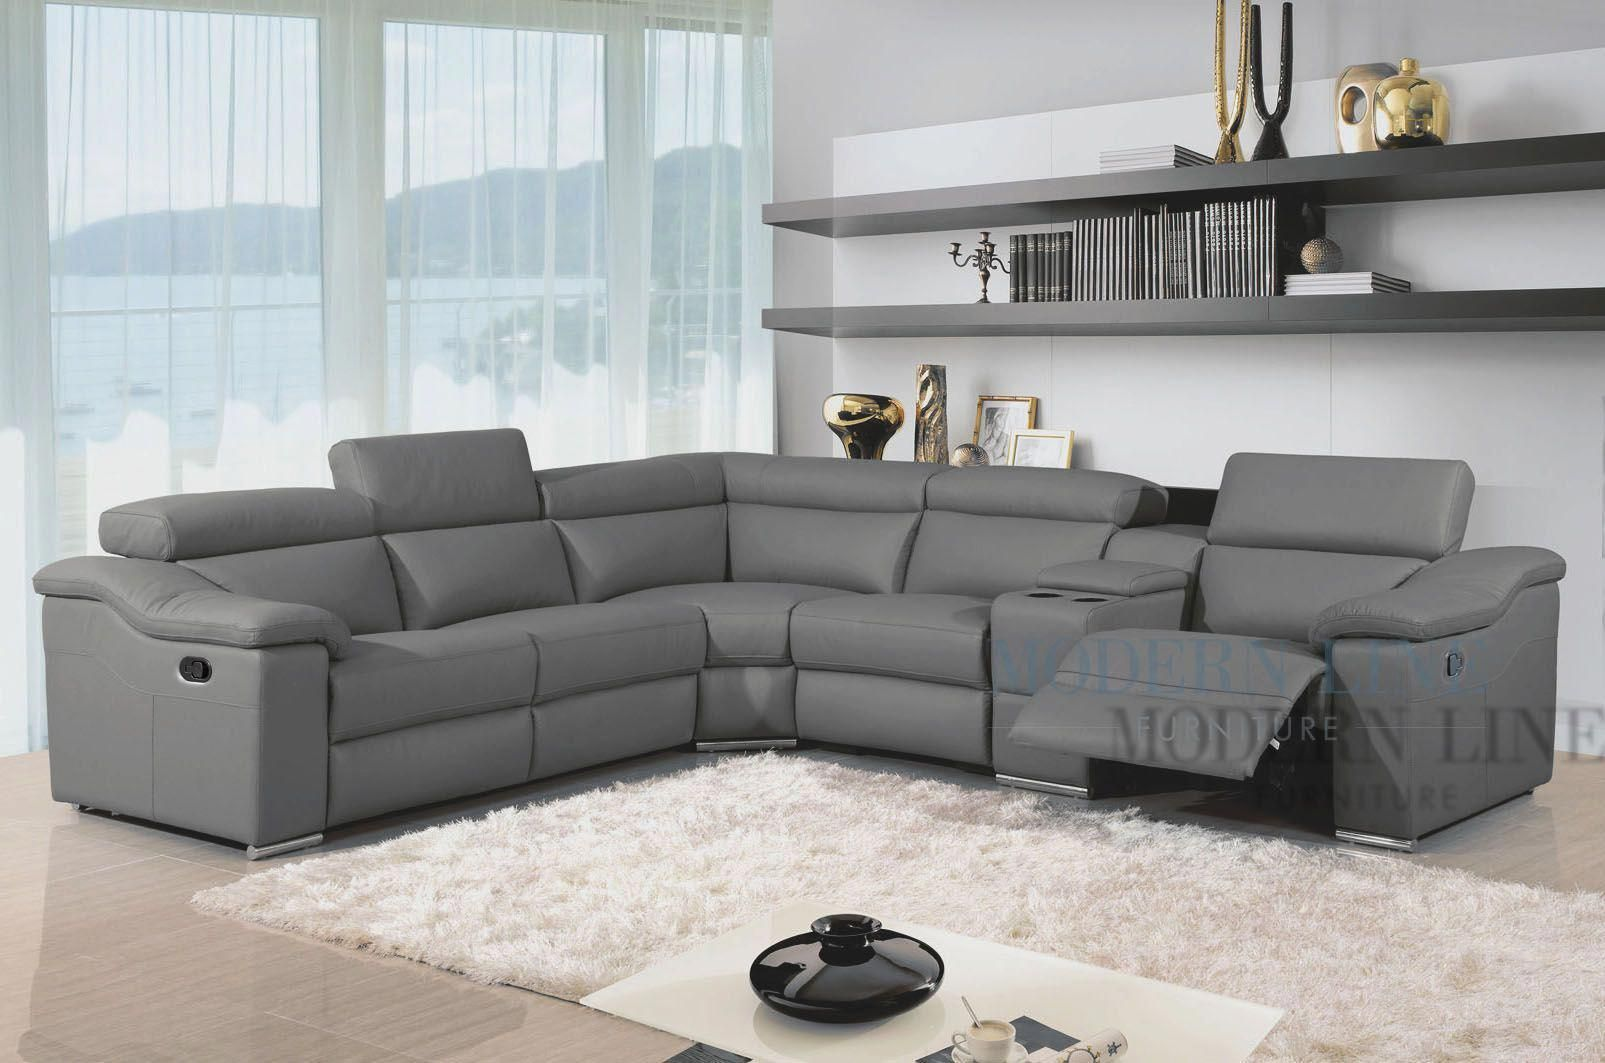 Awesome Great Charcoal Grey Sectional Sofa 29 About Remodel Home Design Ideas With Charc Sectional Sofa With Recliner Modern Sofa Sectional Grey Sectional Sofa